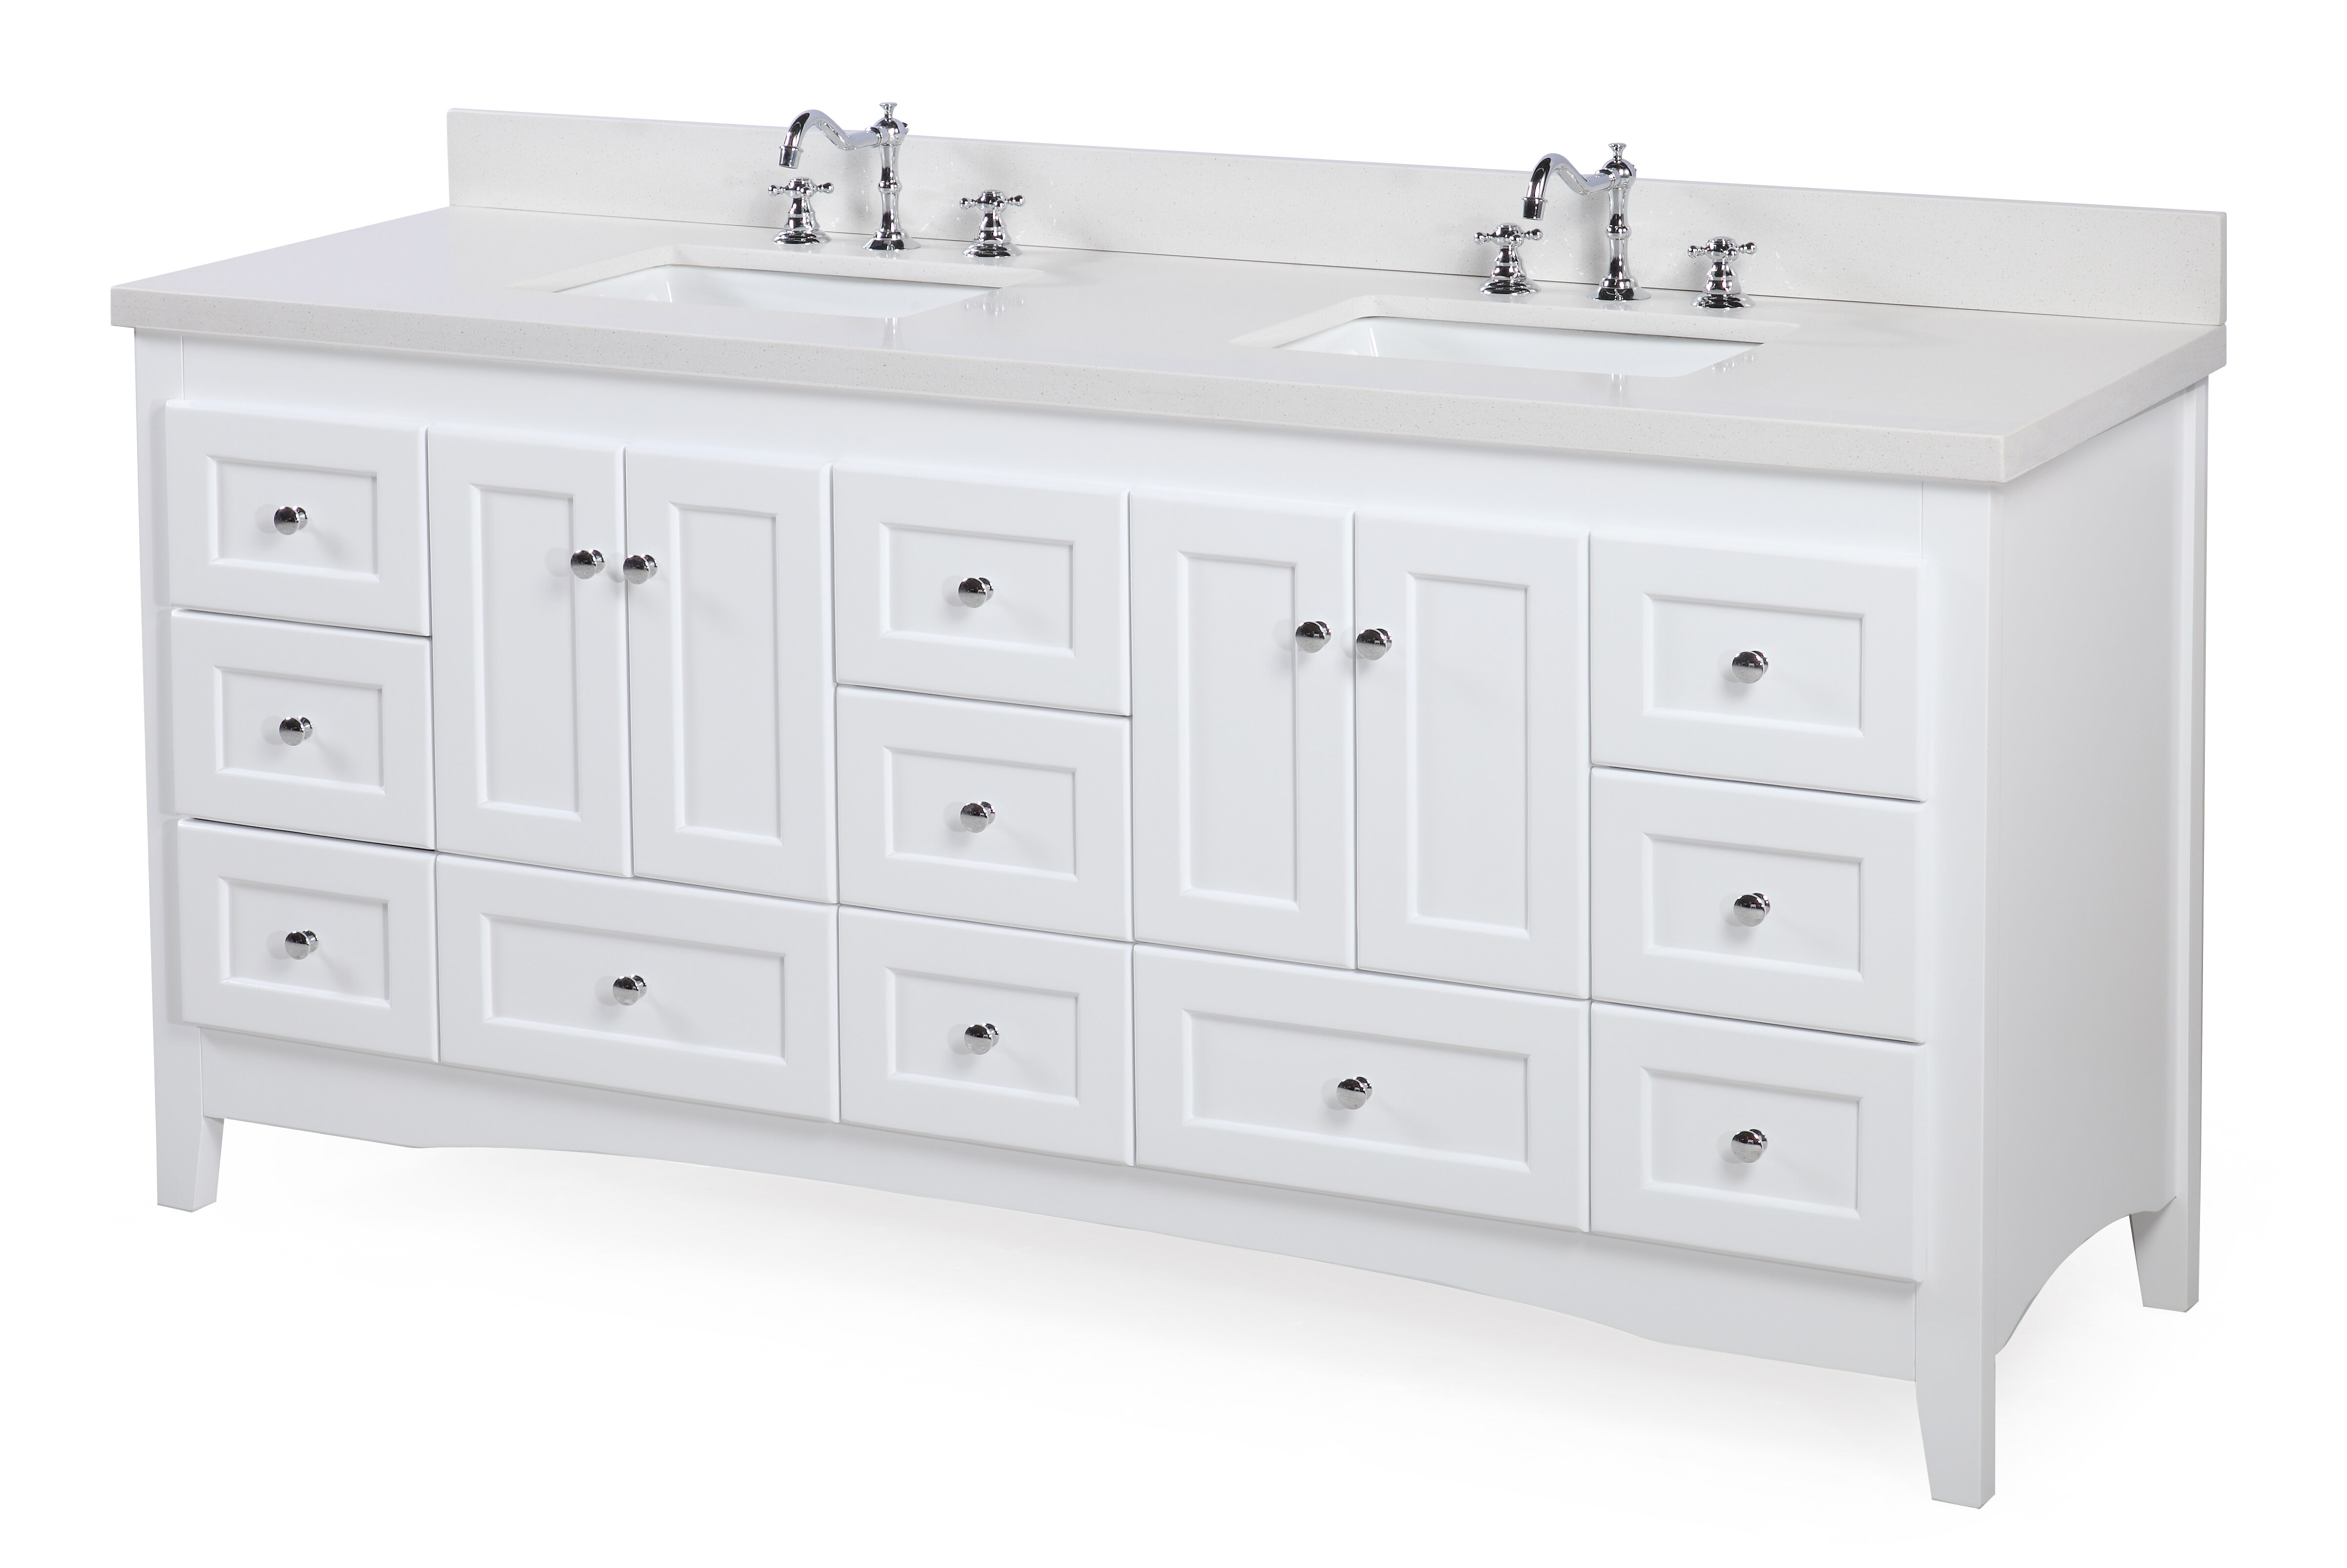 bath vanity bathroom abbey improvement drawer home drawers kitchen pdx double set collection